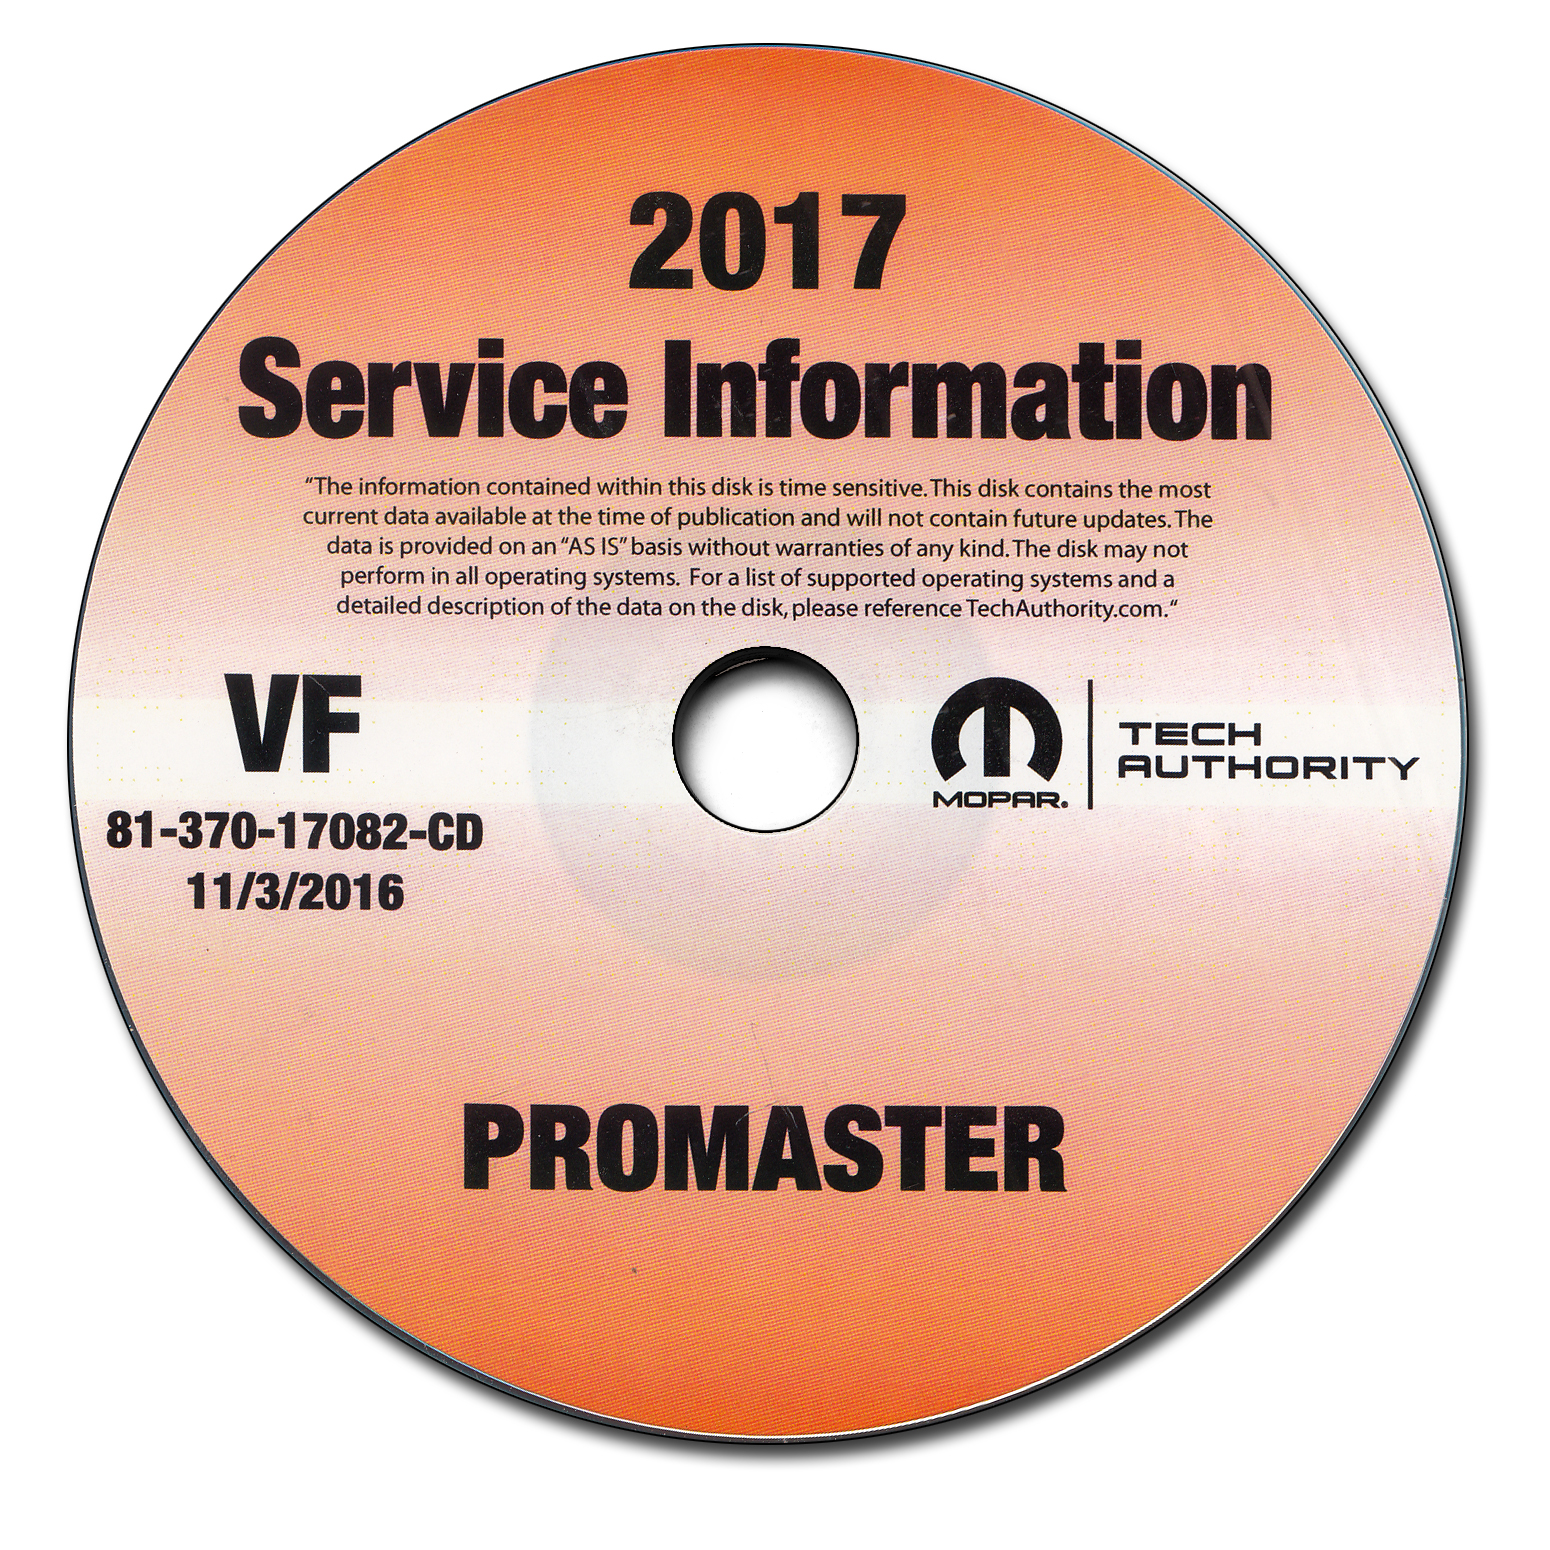 2017 Ram Promaster Repair Shop Manual CD-ROM 1500 2500 3500 Dodge